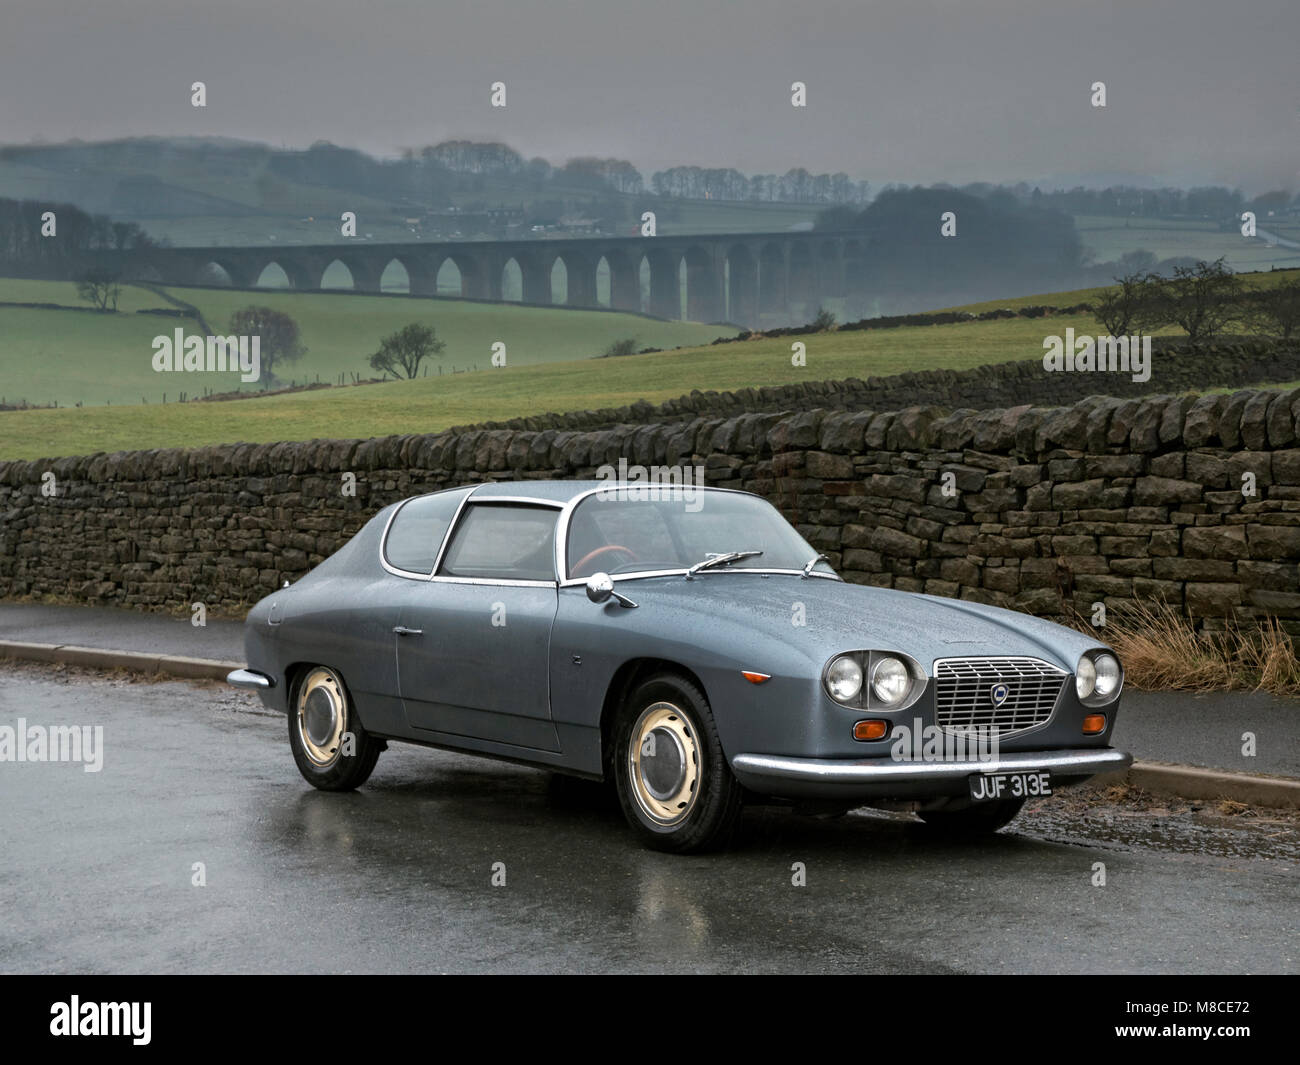 https://c8.alamy.com/comp/M8CE72/1967-lancia-flavia-zagato-with-heweden-viaduct-in-the-valley-near-M8CE72.jpg